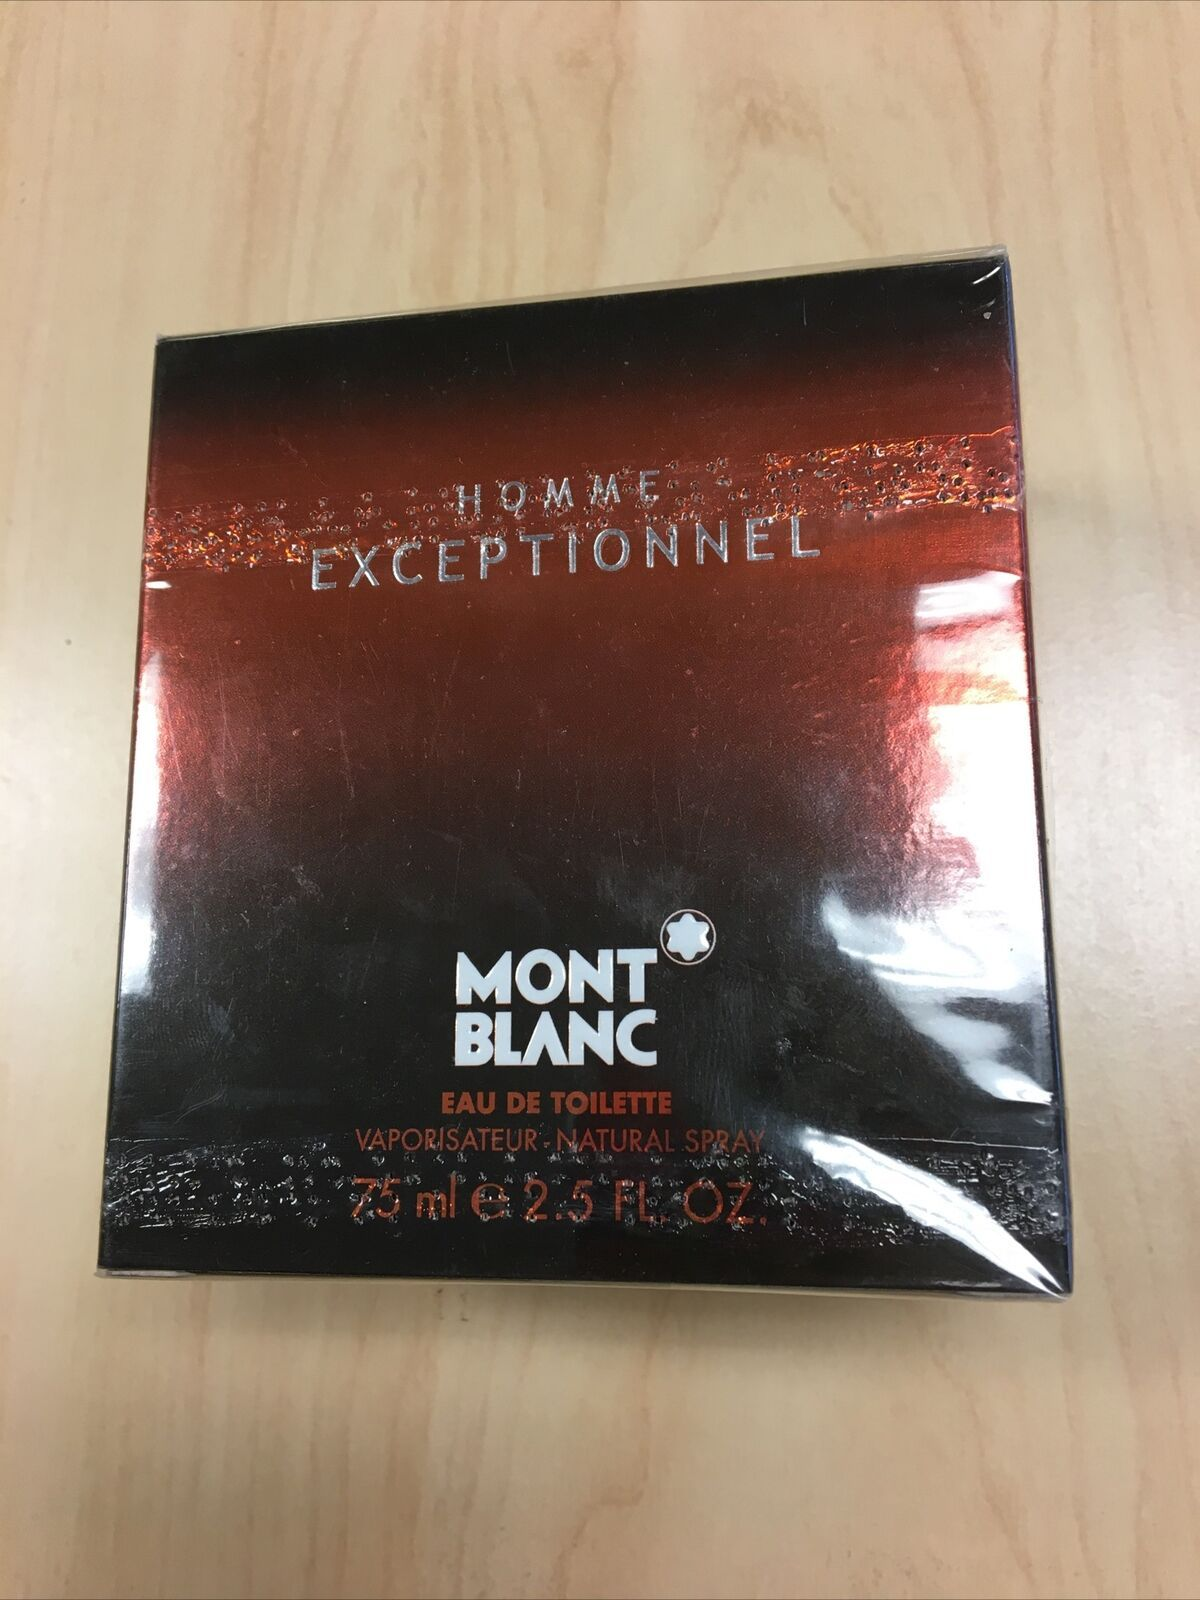 Aaamont blanc homme exceptional 2.5 oz cologne